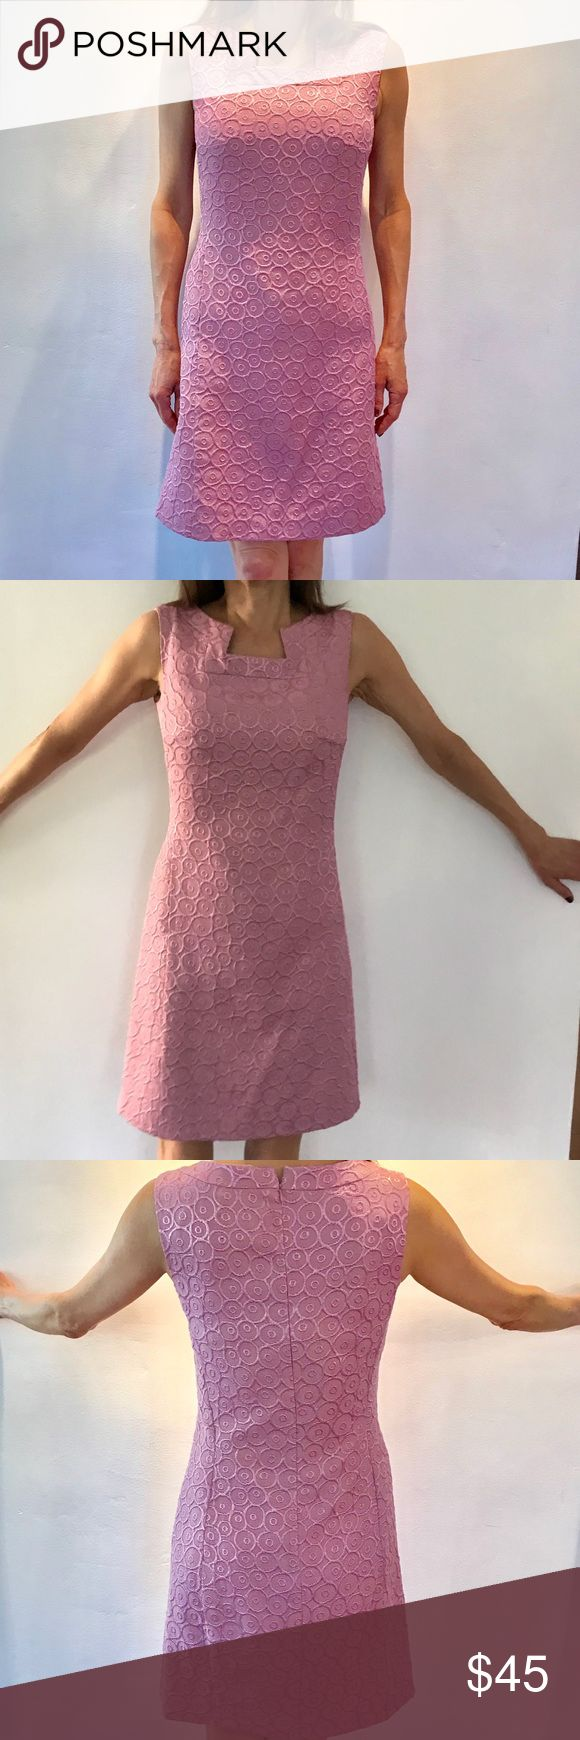 Nine West Salmon Pink Dress Pretty salmon pink color dress. I have got lots of compliments. There are pockets on both side of the dress. This is the dress that never can go wrong! Nine West Dresses Mini